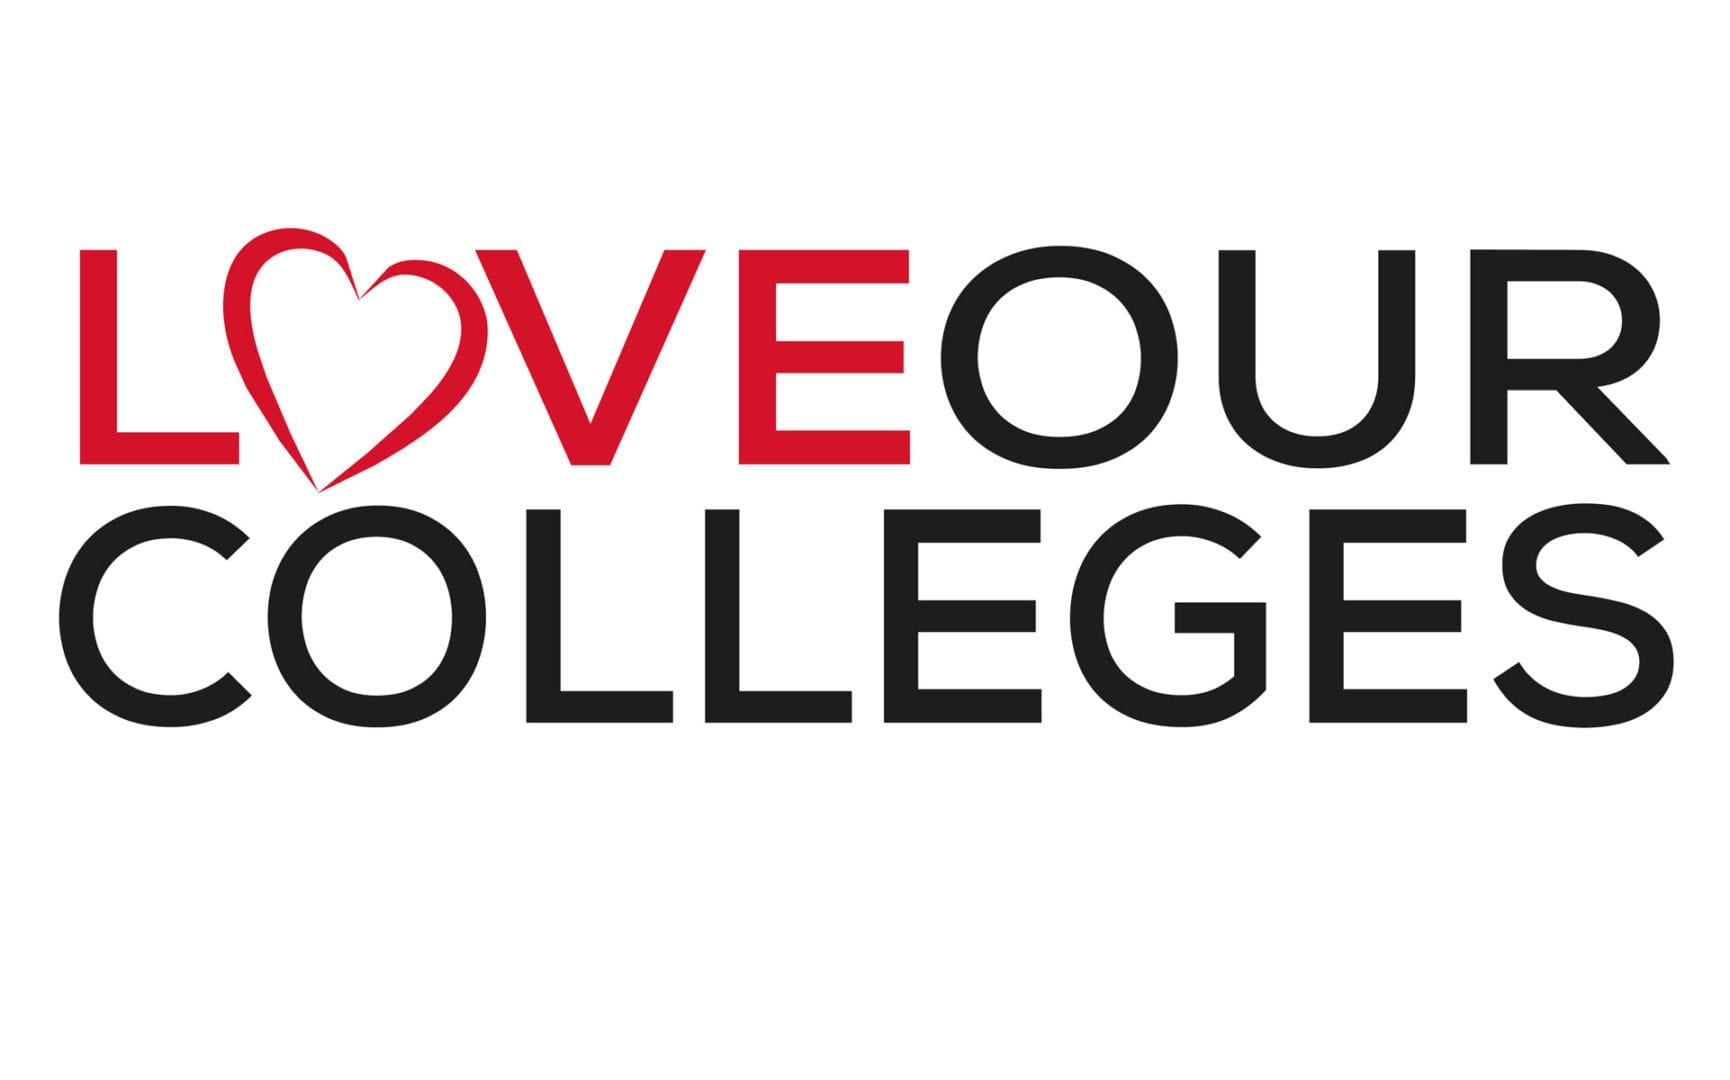 #LoveOurColleges